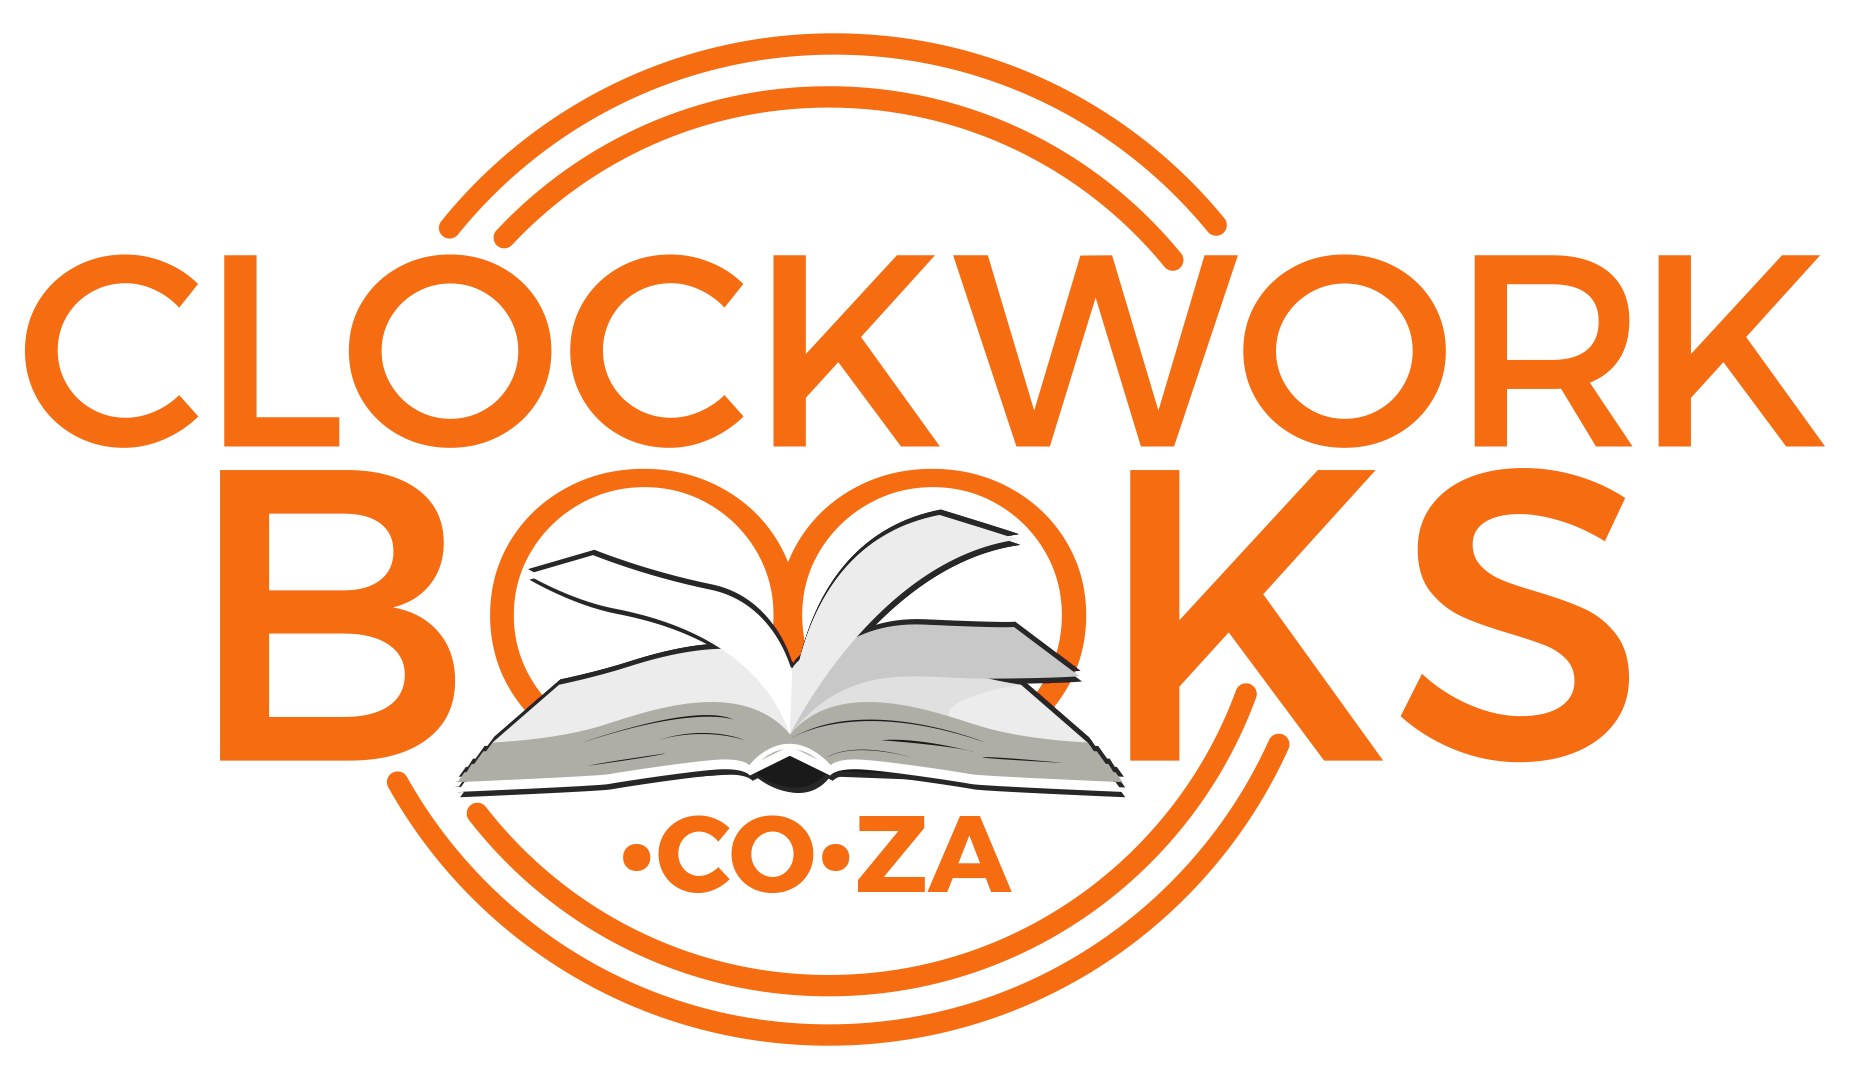 Clockwork Books